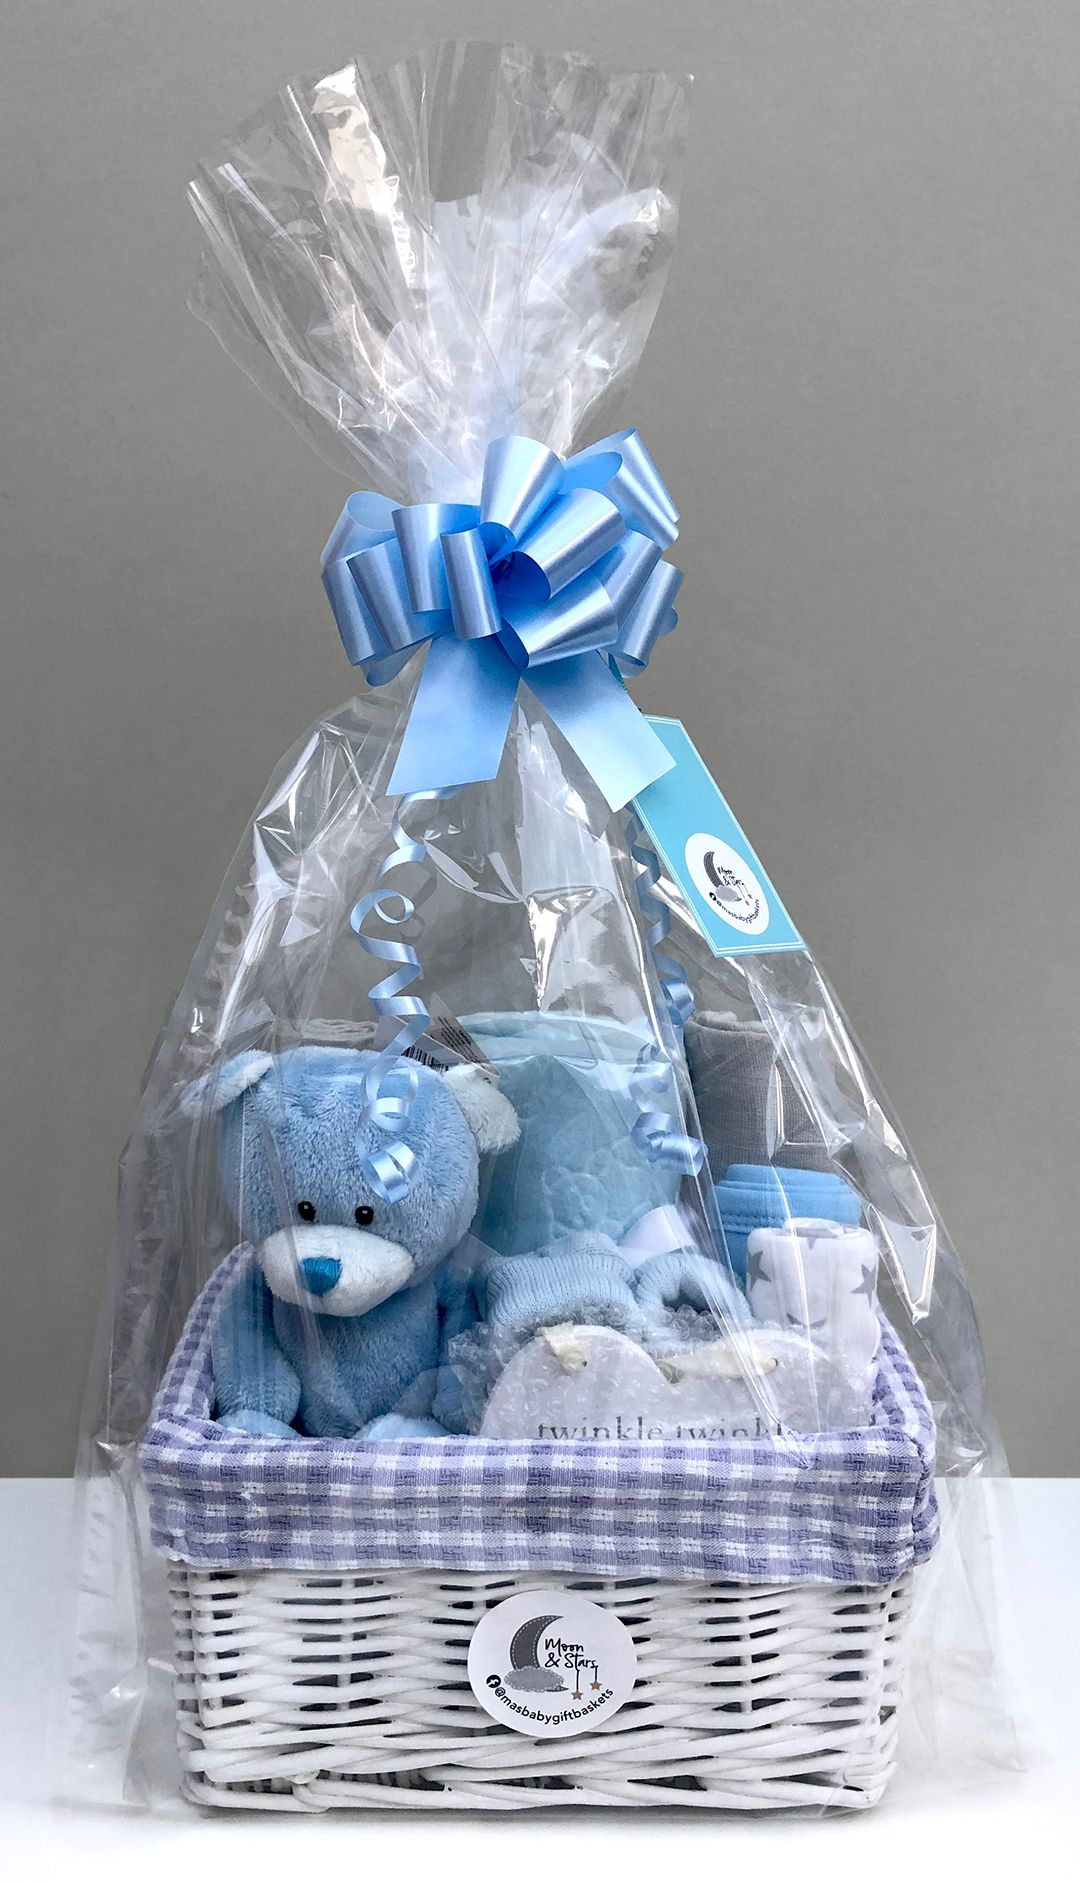 All of our blue baby boy gift baskets are presented in